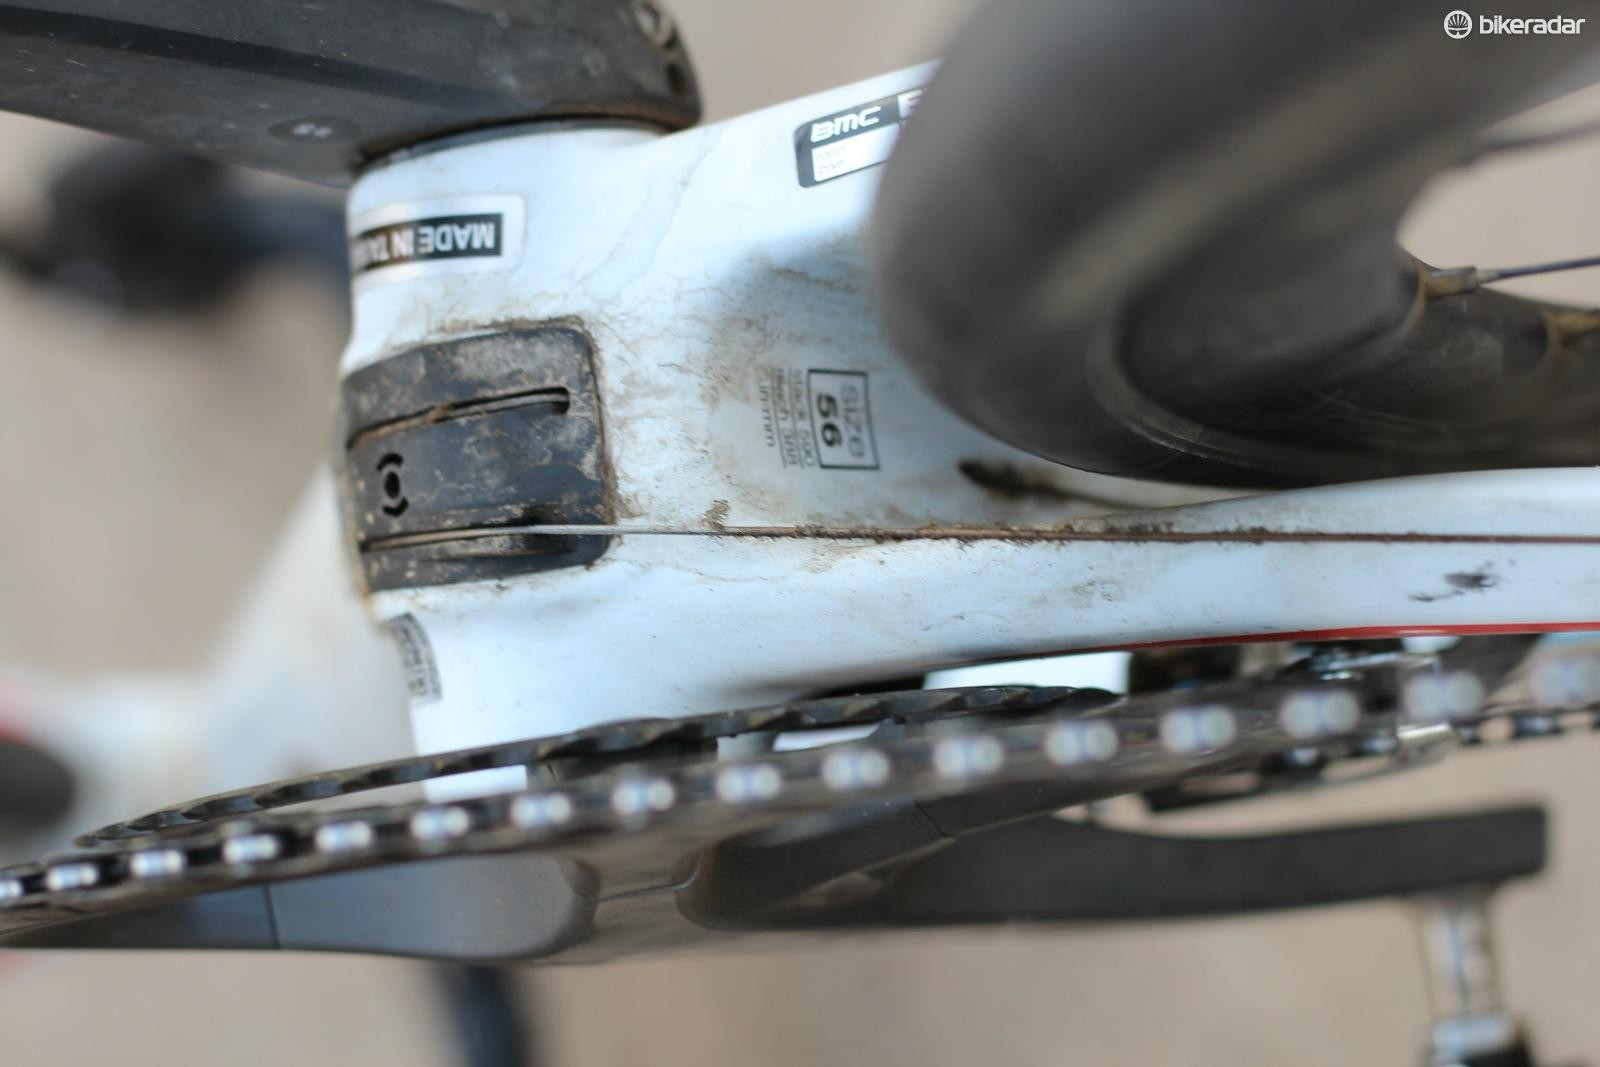 I'd like to see the rear derailleur cable either hidden in the frame or at least sheathed in housing